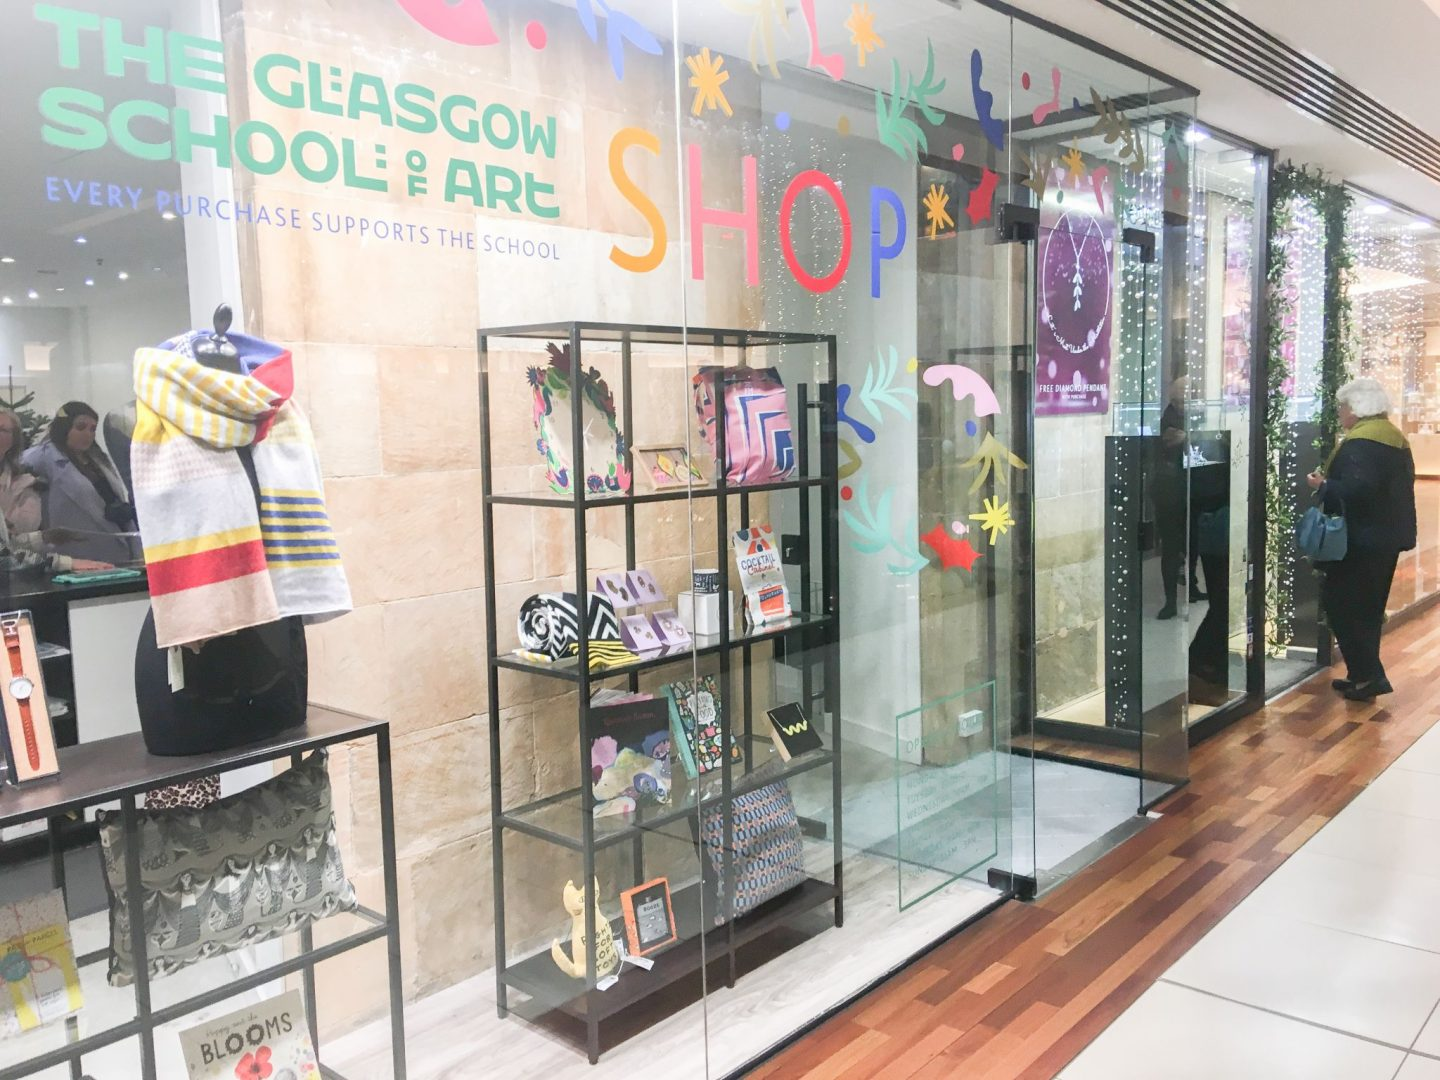 glasgow school of art pop-up shop